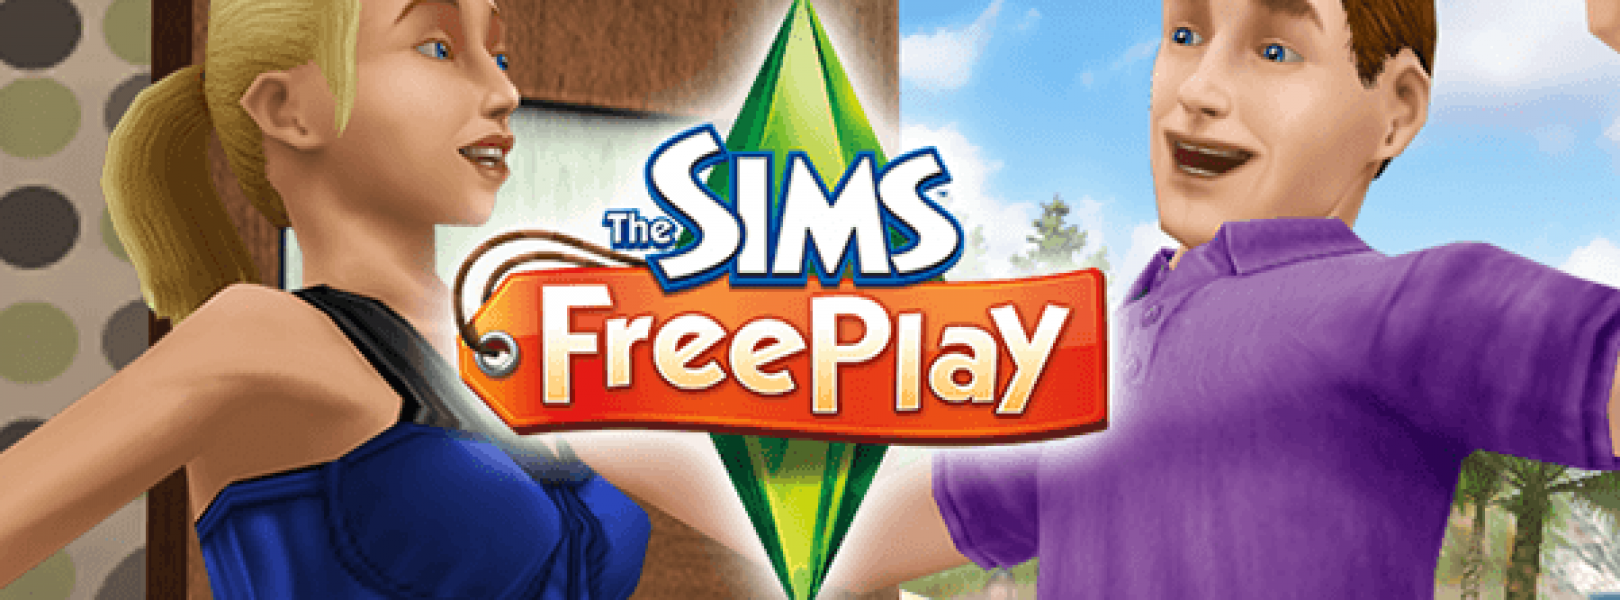 The Sims Freeplay Capsule Computers